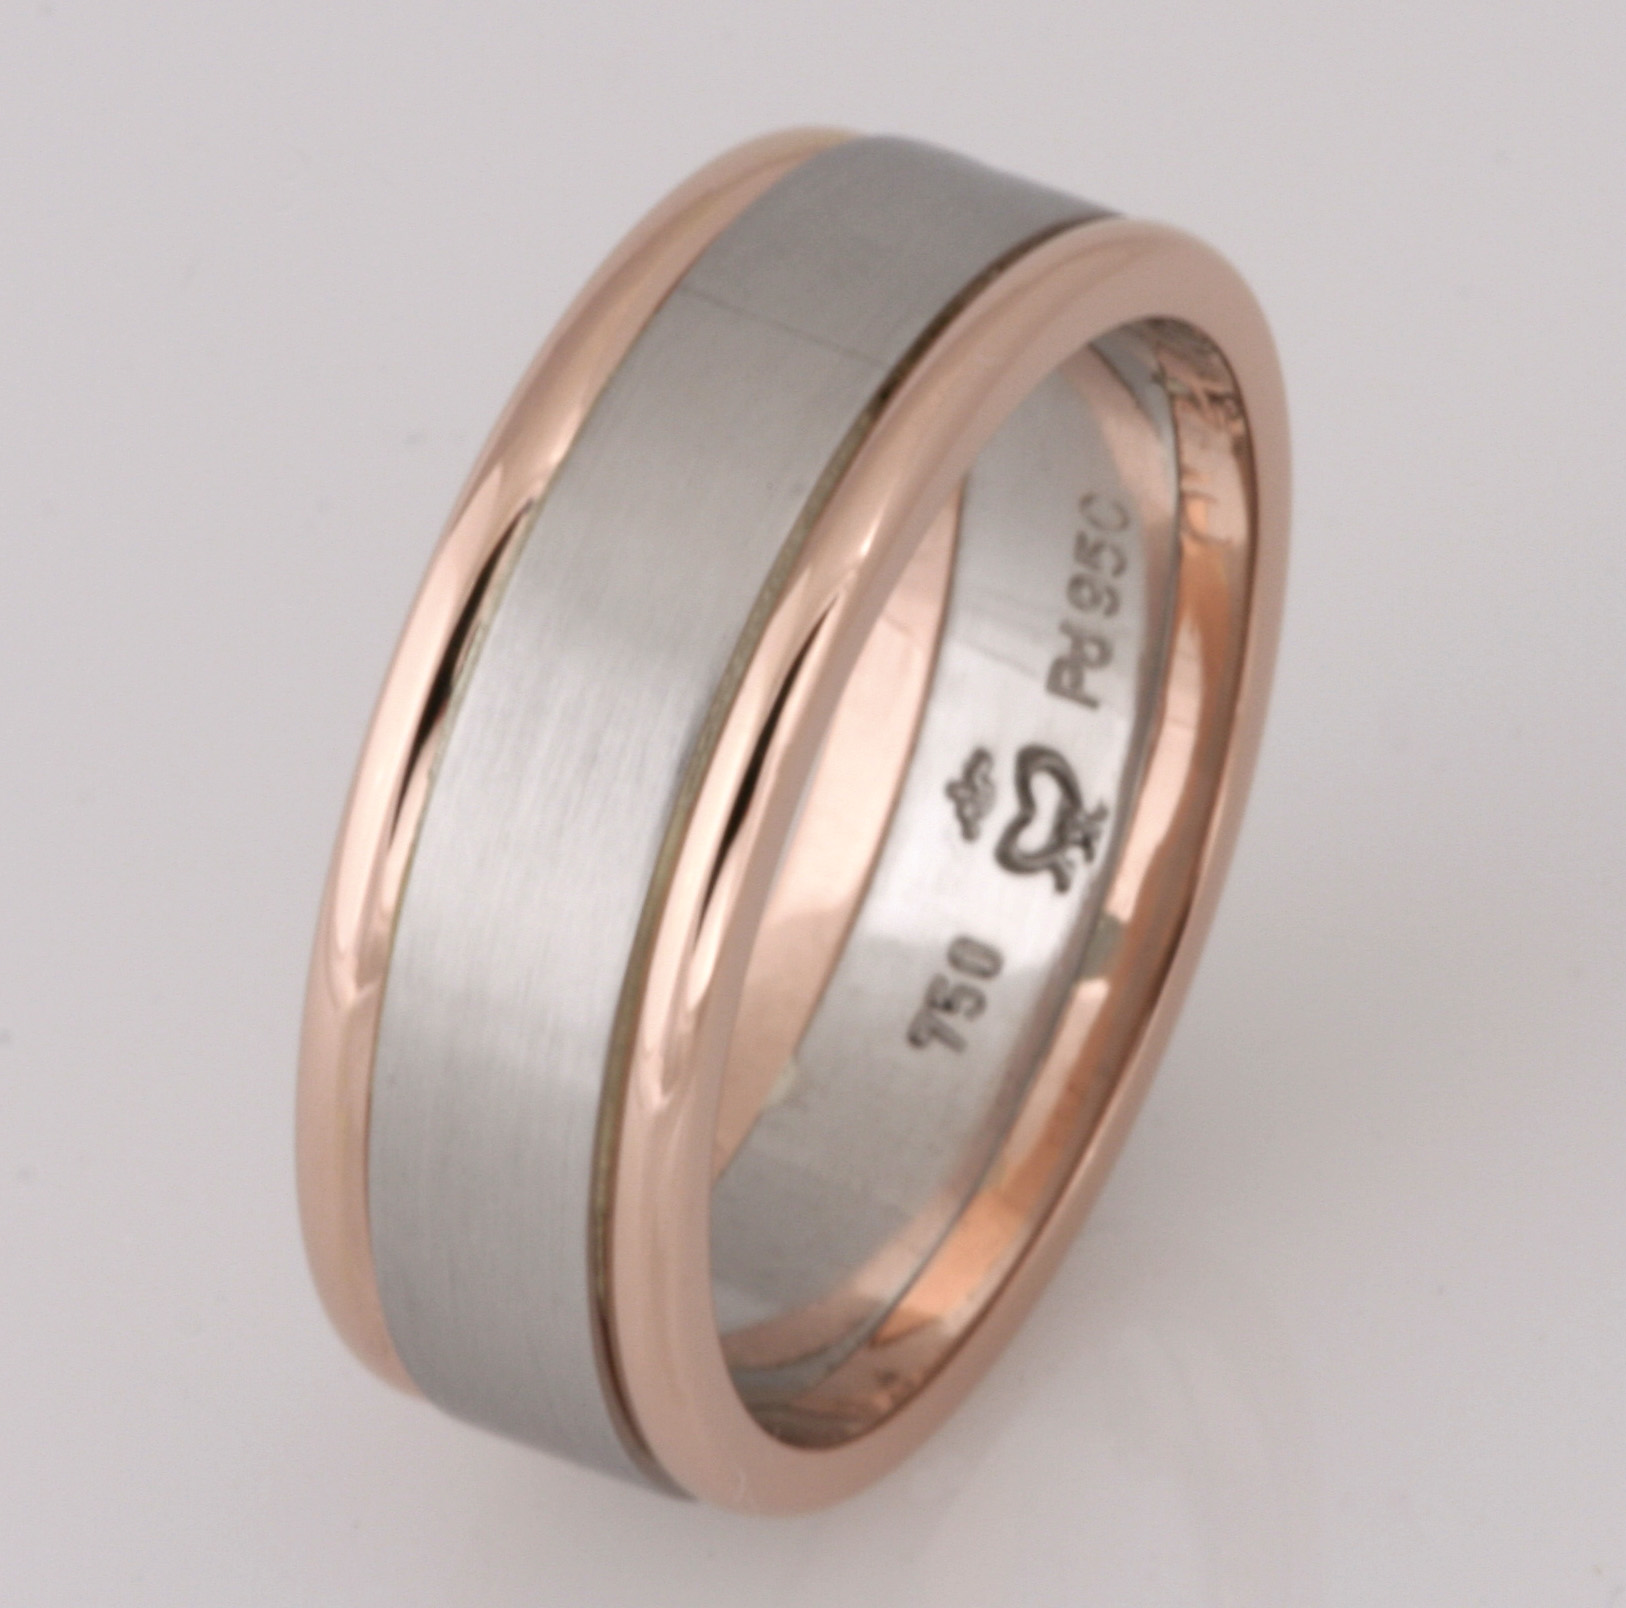 Handmade gents palladium and 18ct rose gold wedding ring